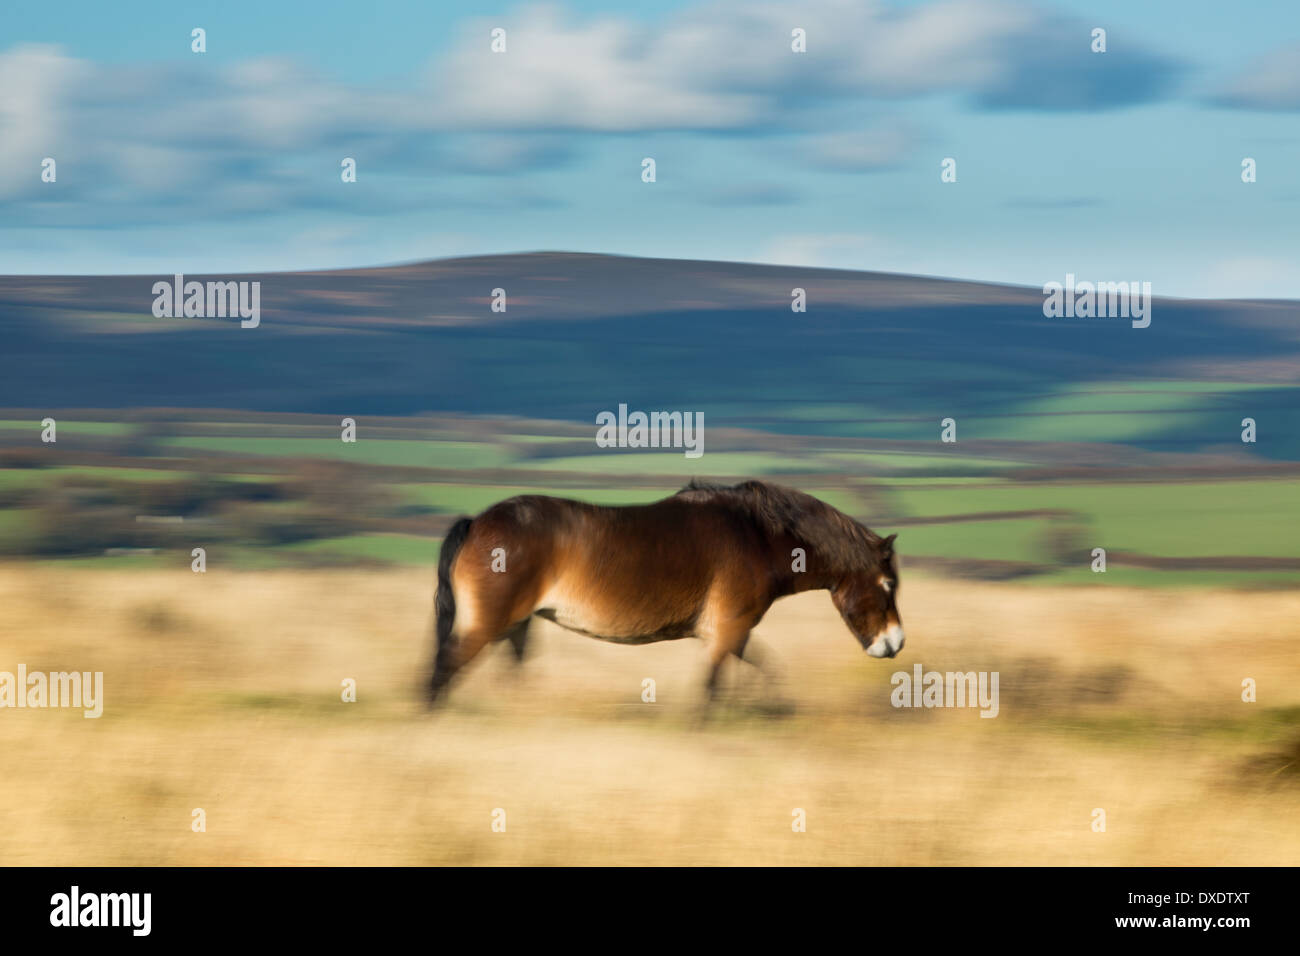 A wild Exmoor pny on Winsford Hill, Exmoor, National Park, Somerset, England - Stock Image